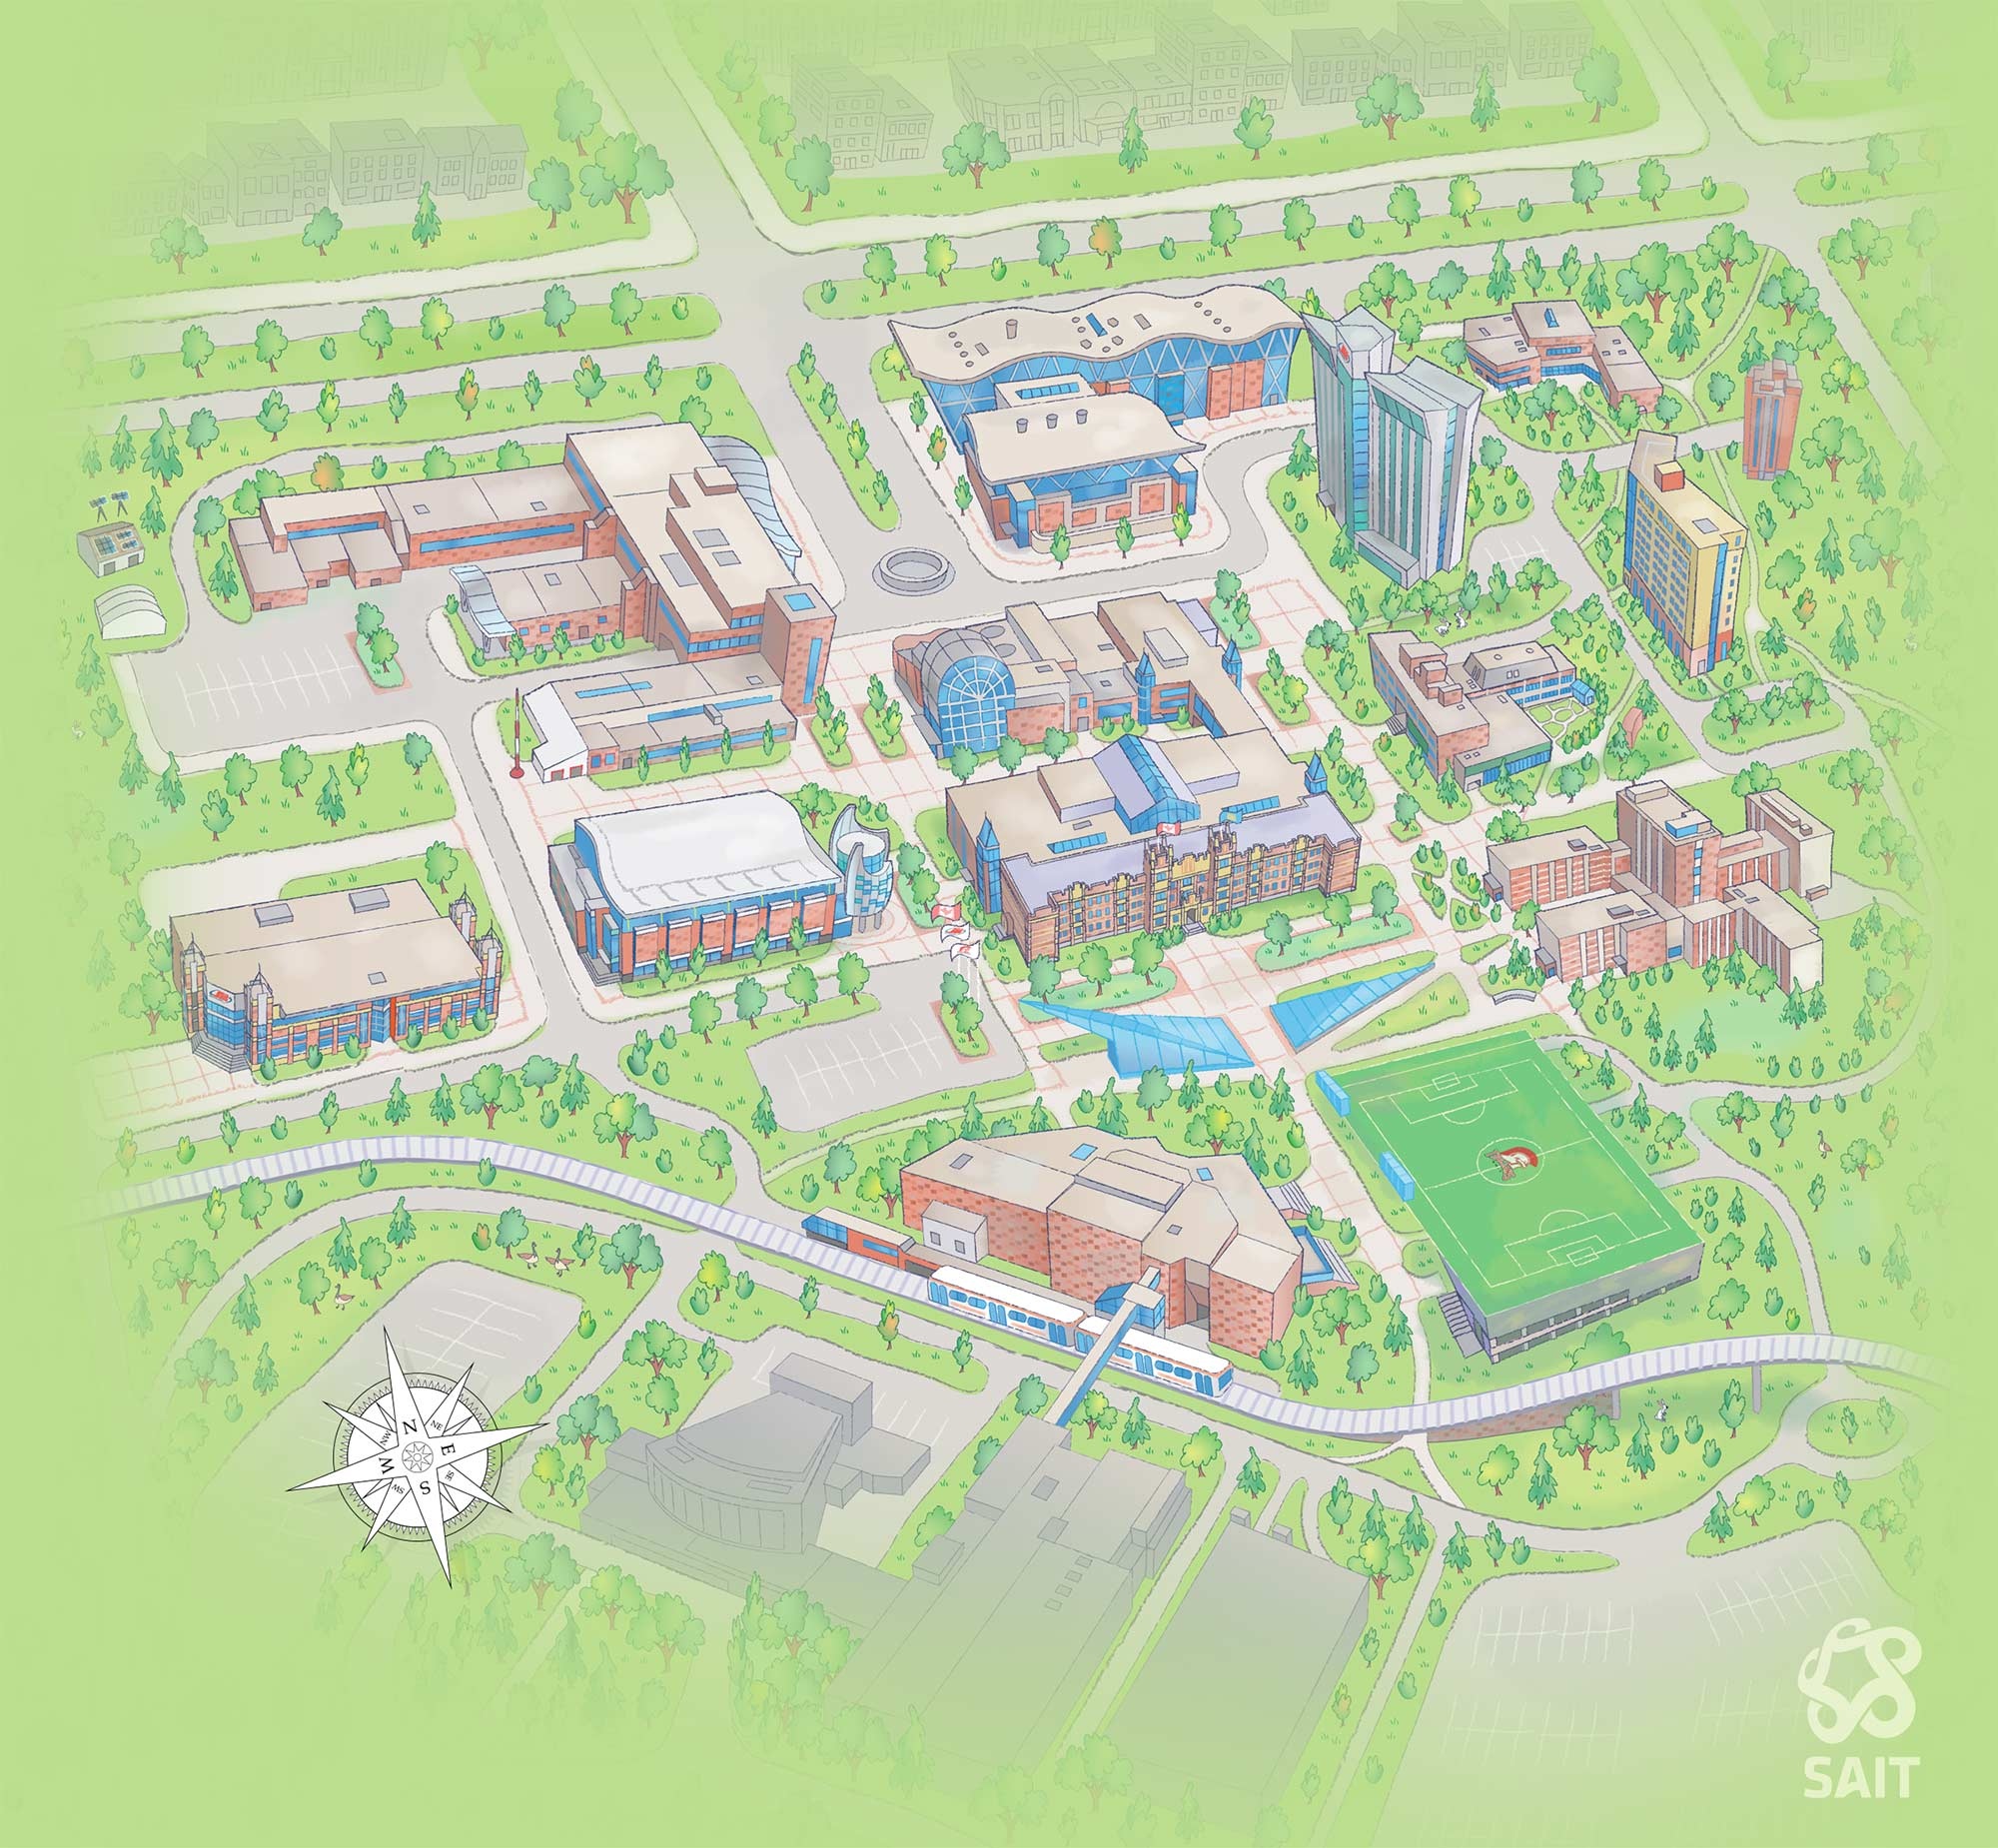 John Carroll University Campus Map.Virtual Tour Of Sait Southern Alberta Institute Of Technology